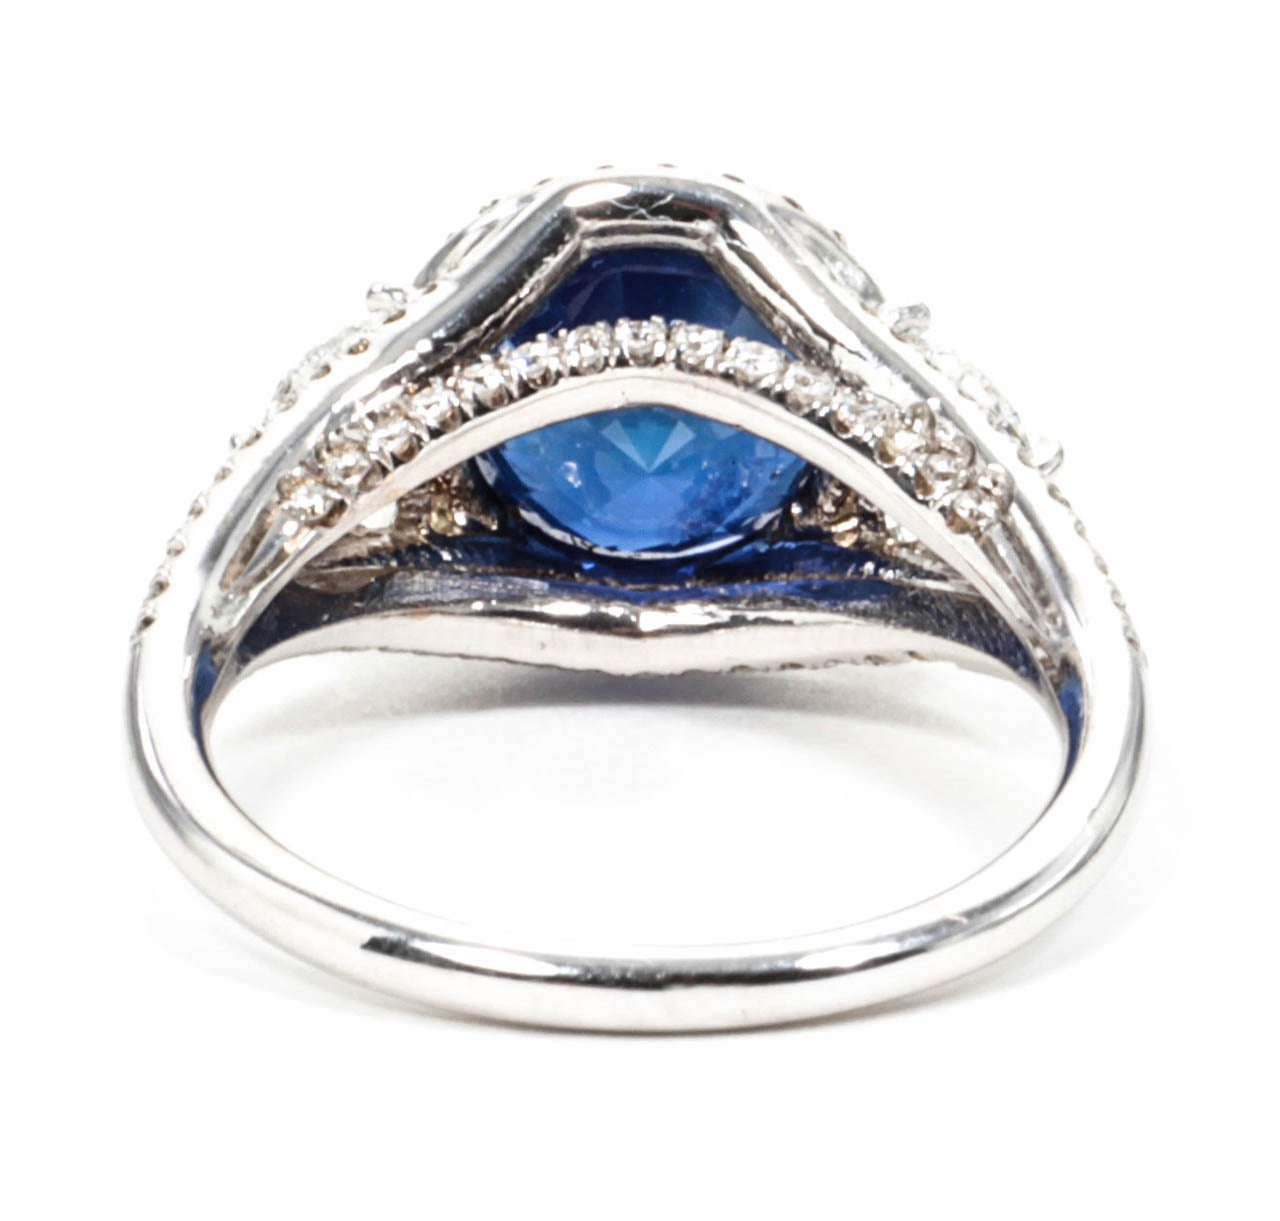 Women's Certified Rare Natural No Heat Round Sapphire Diamond Ring For Sale